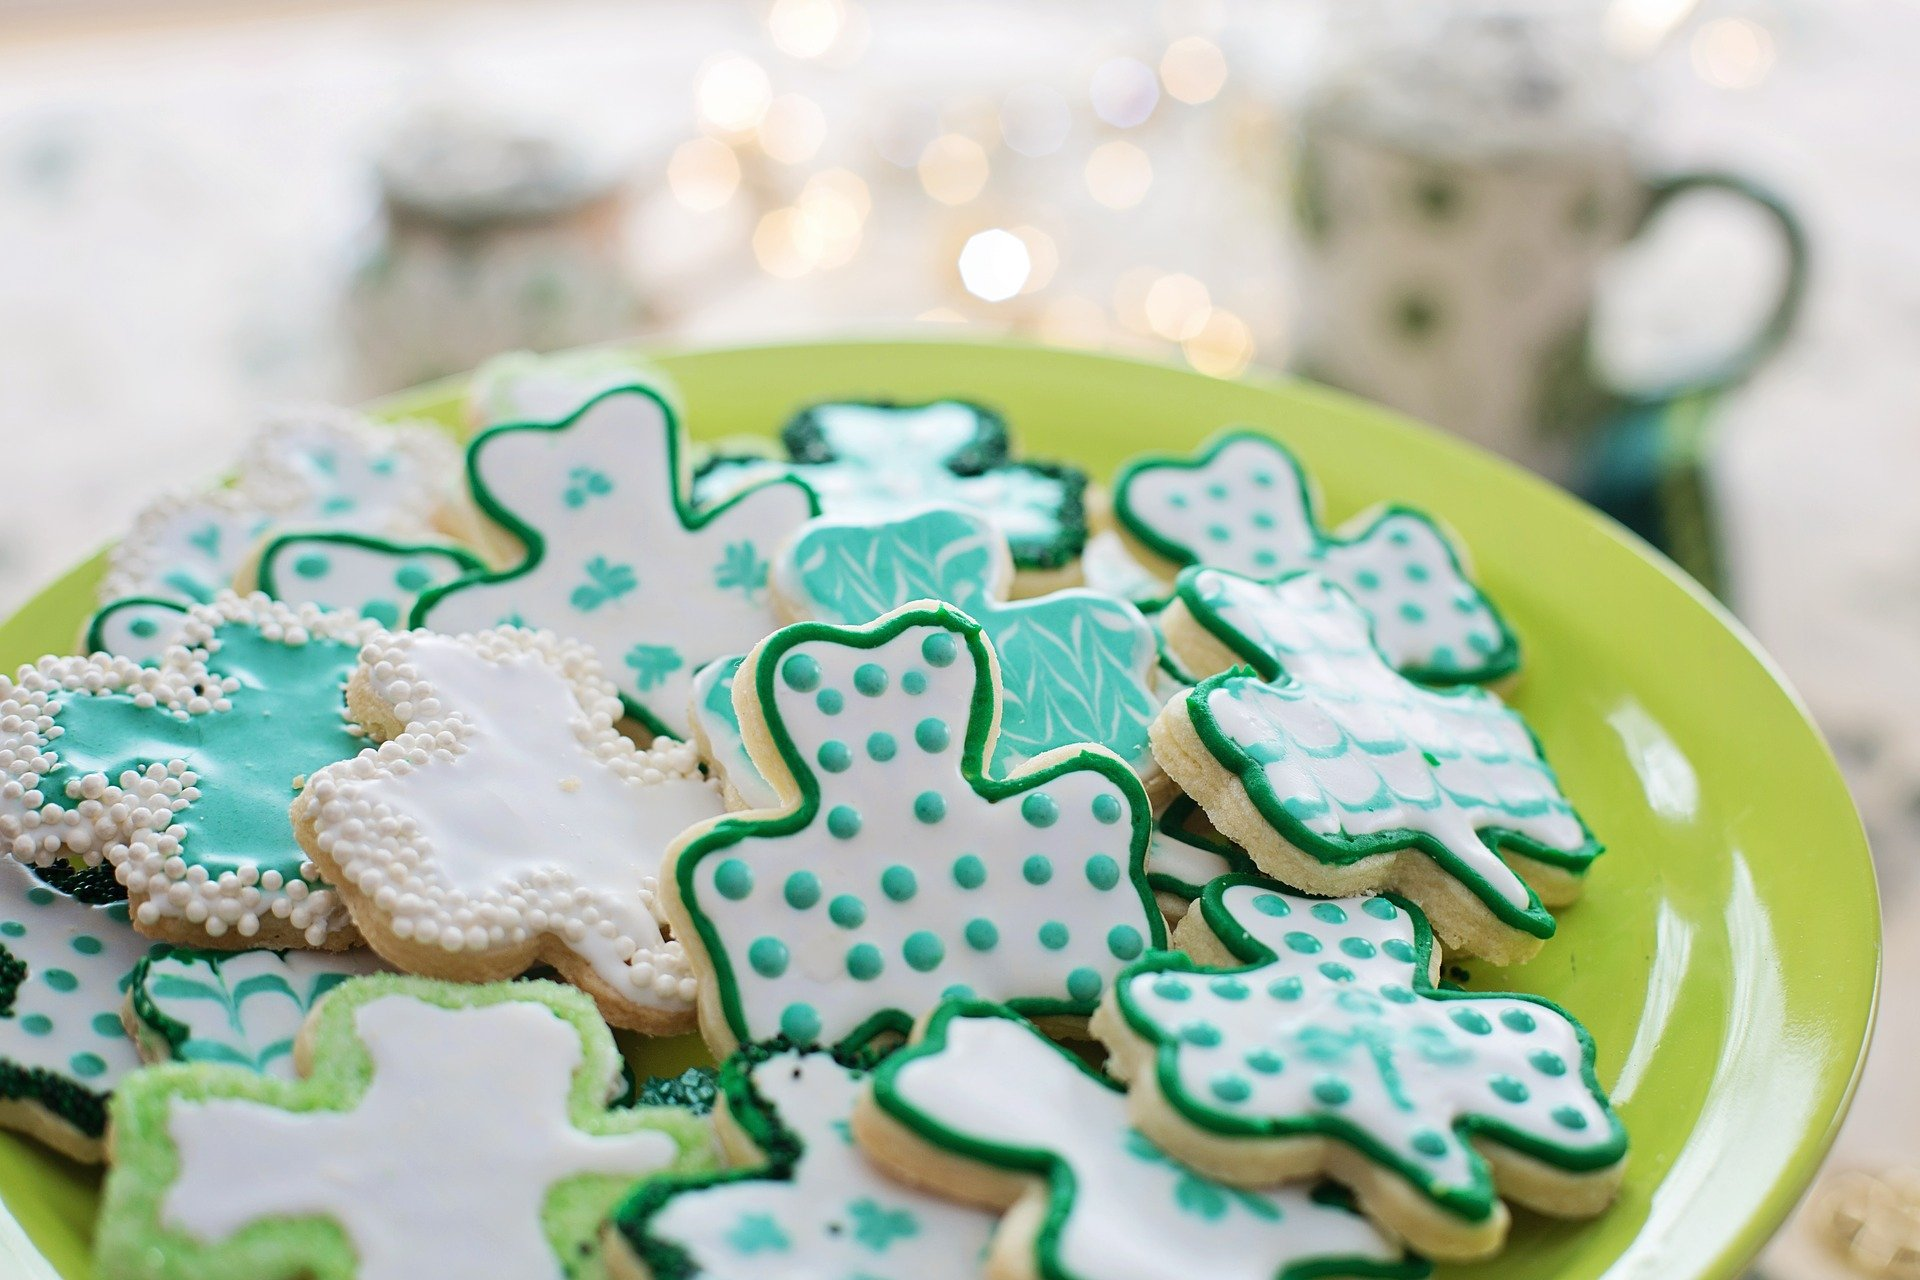 A plate of St. Patrick's Day cookies.